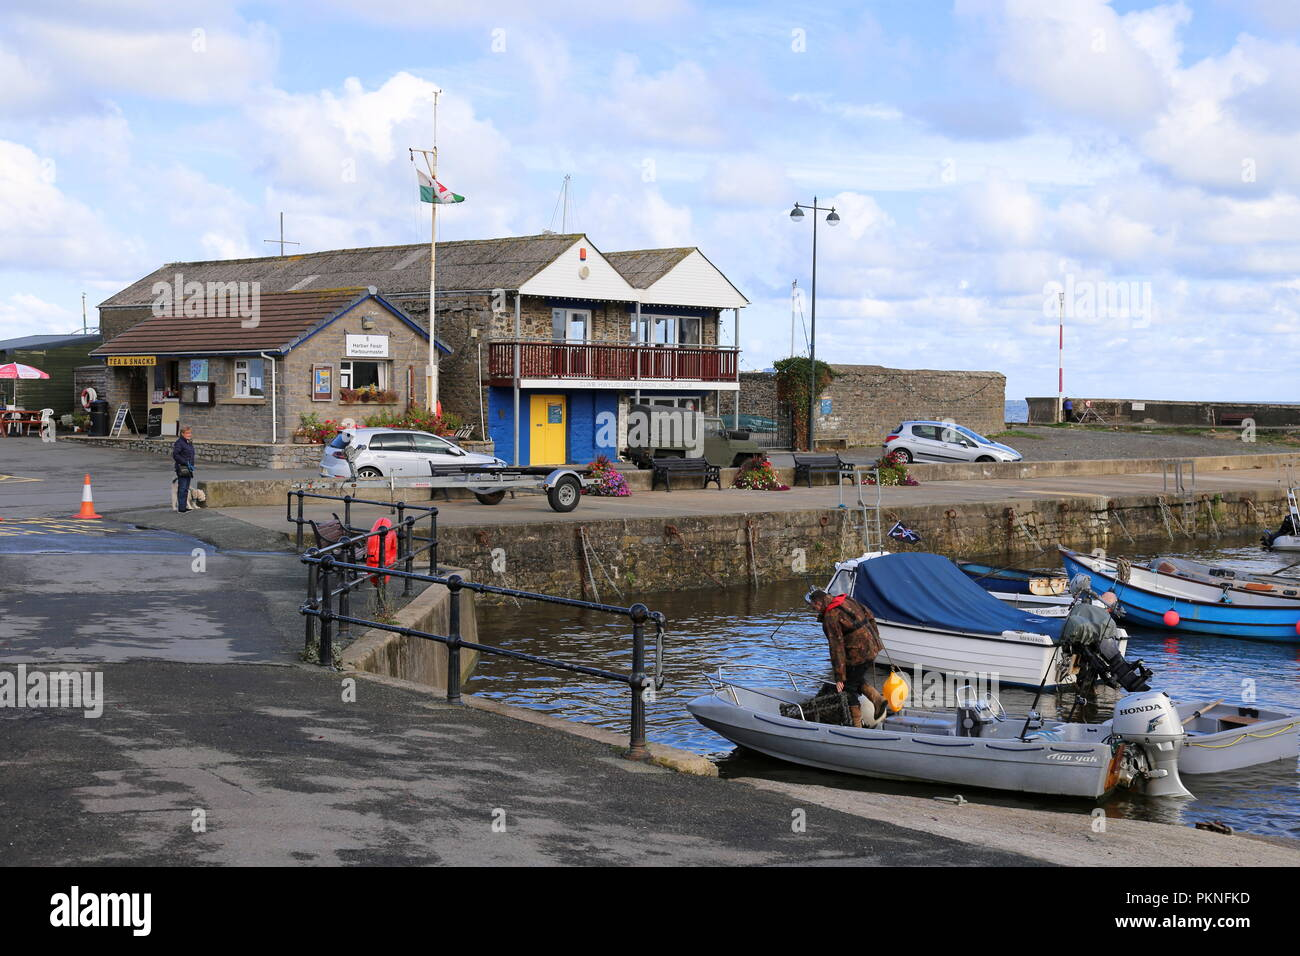 Aberaeron Yacht Club, South Beach, Aberaeron, Cardigan Bay, Ceredigion, Wales, Great Britain, United Kingdom, UK, Europe - Stock Image